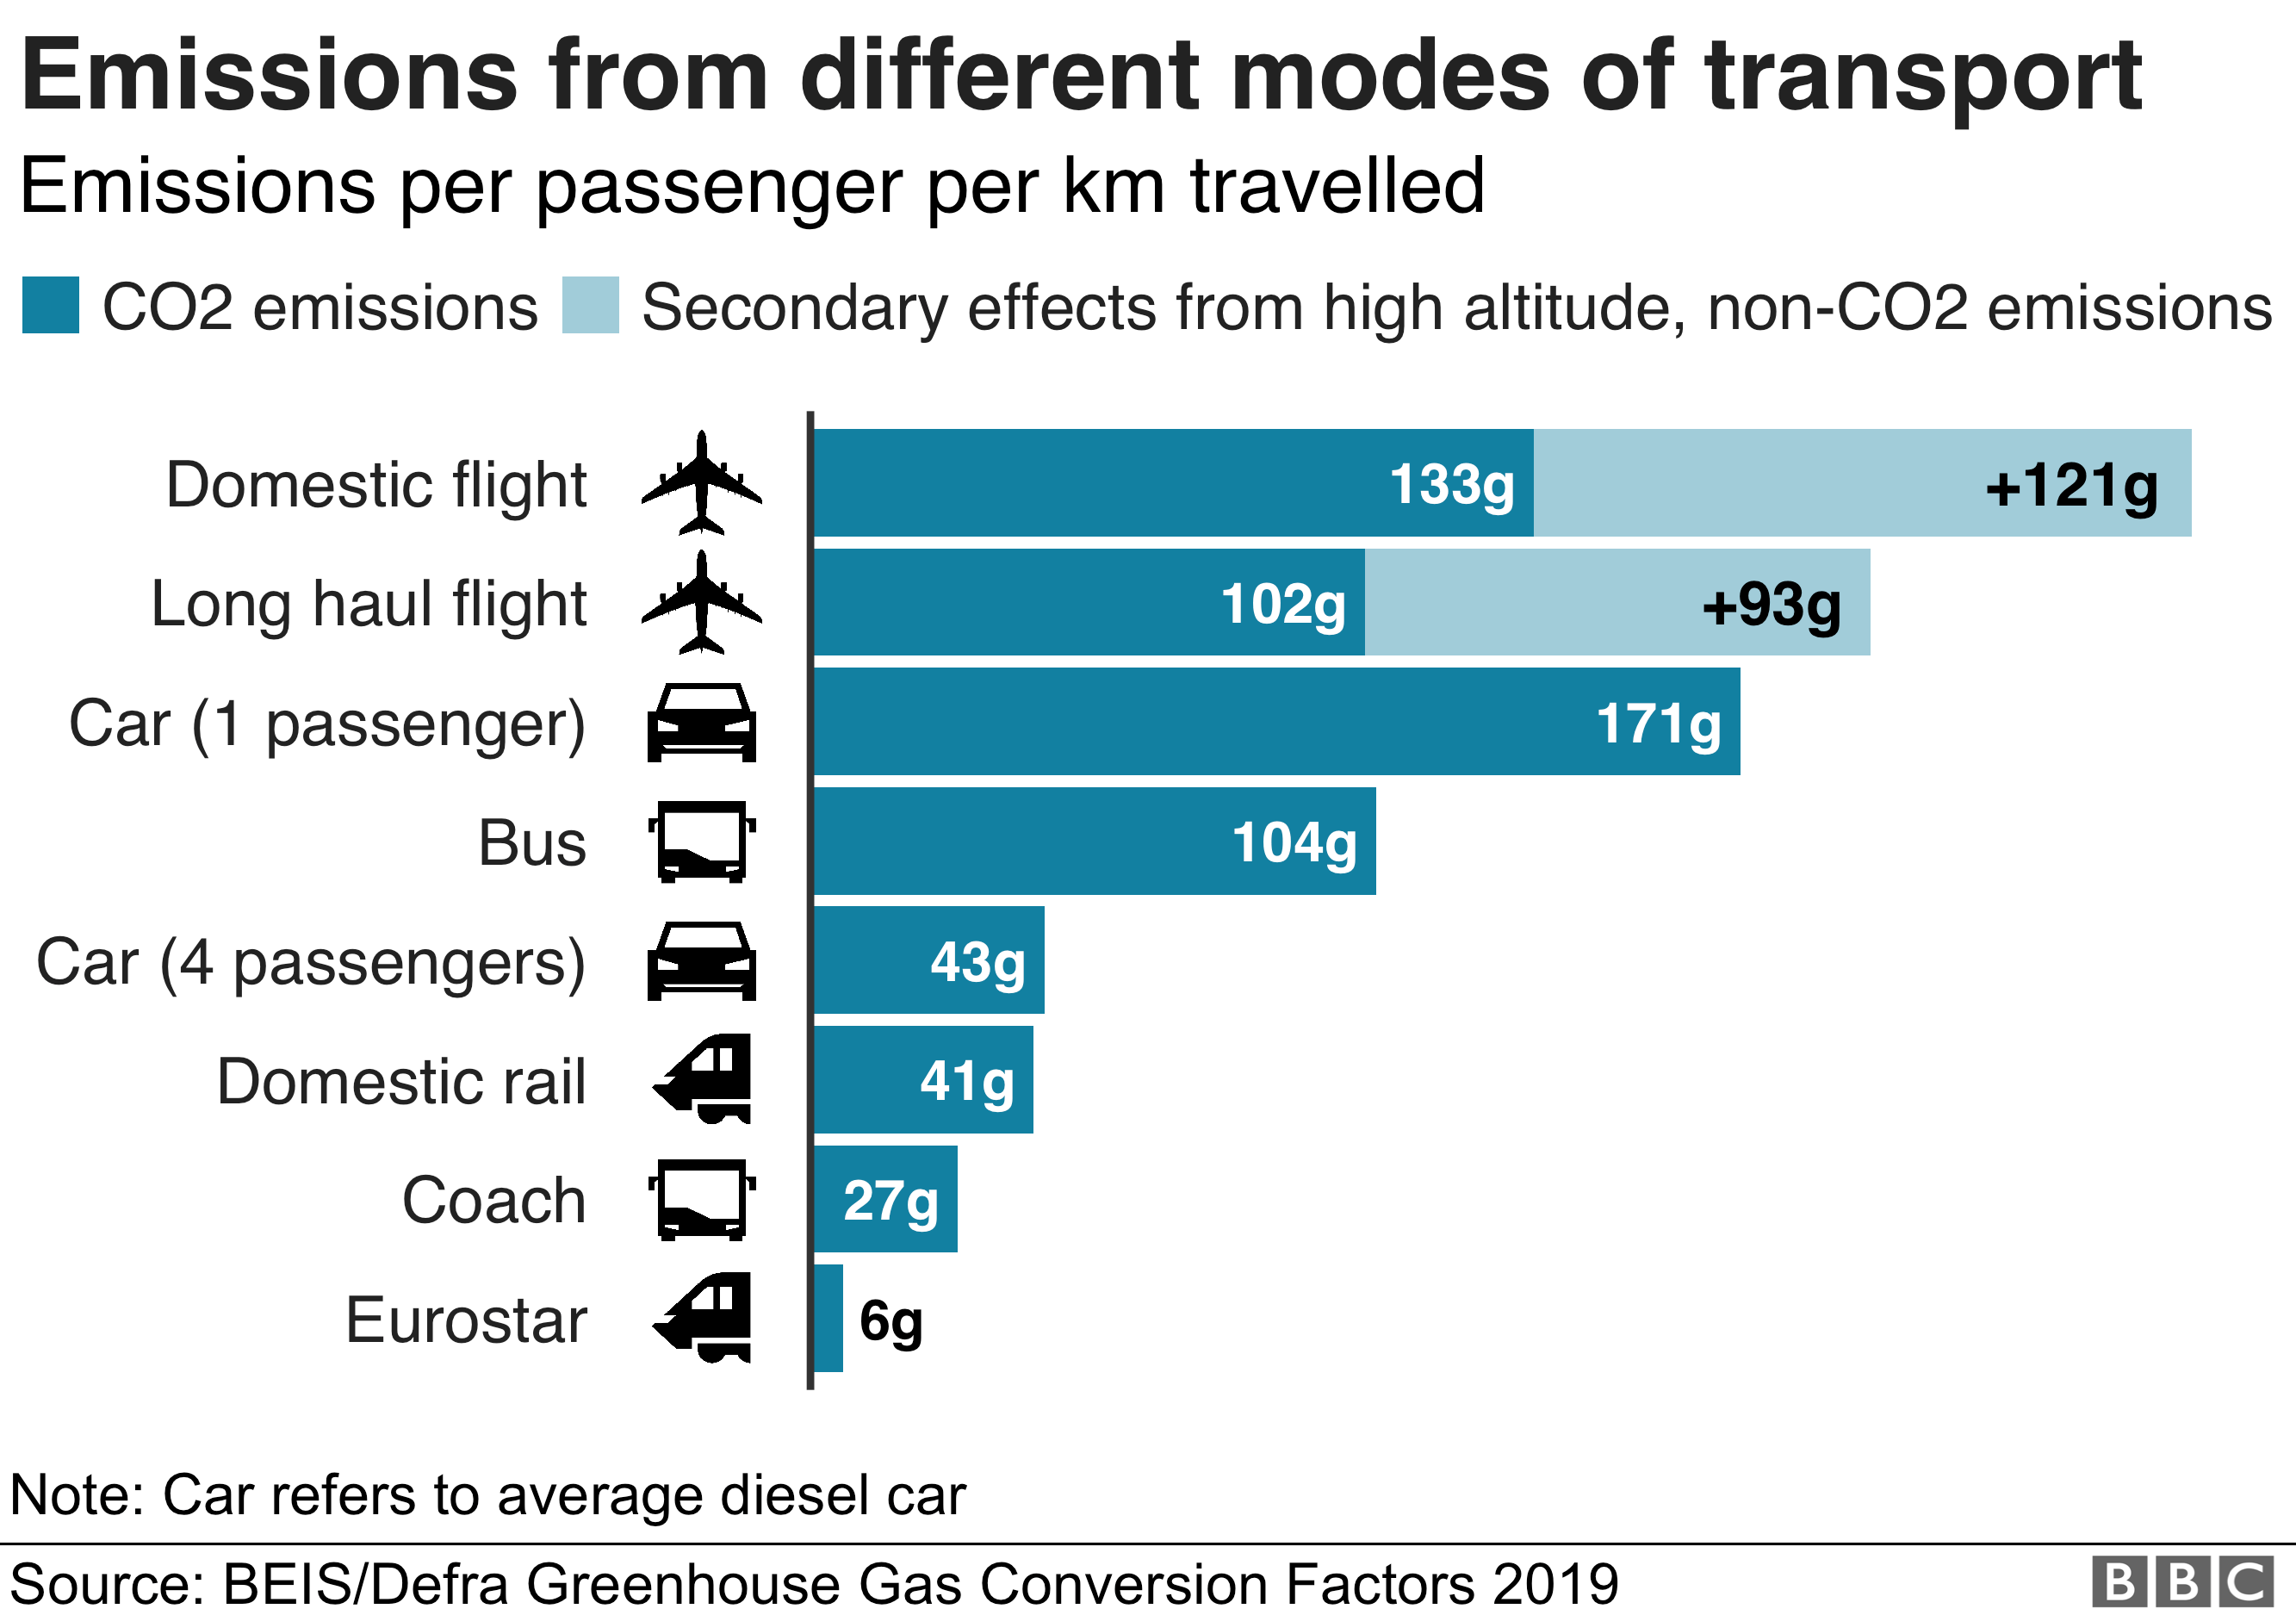 Climate change: Should you fly, drive or take the train? - BBC News